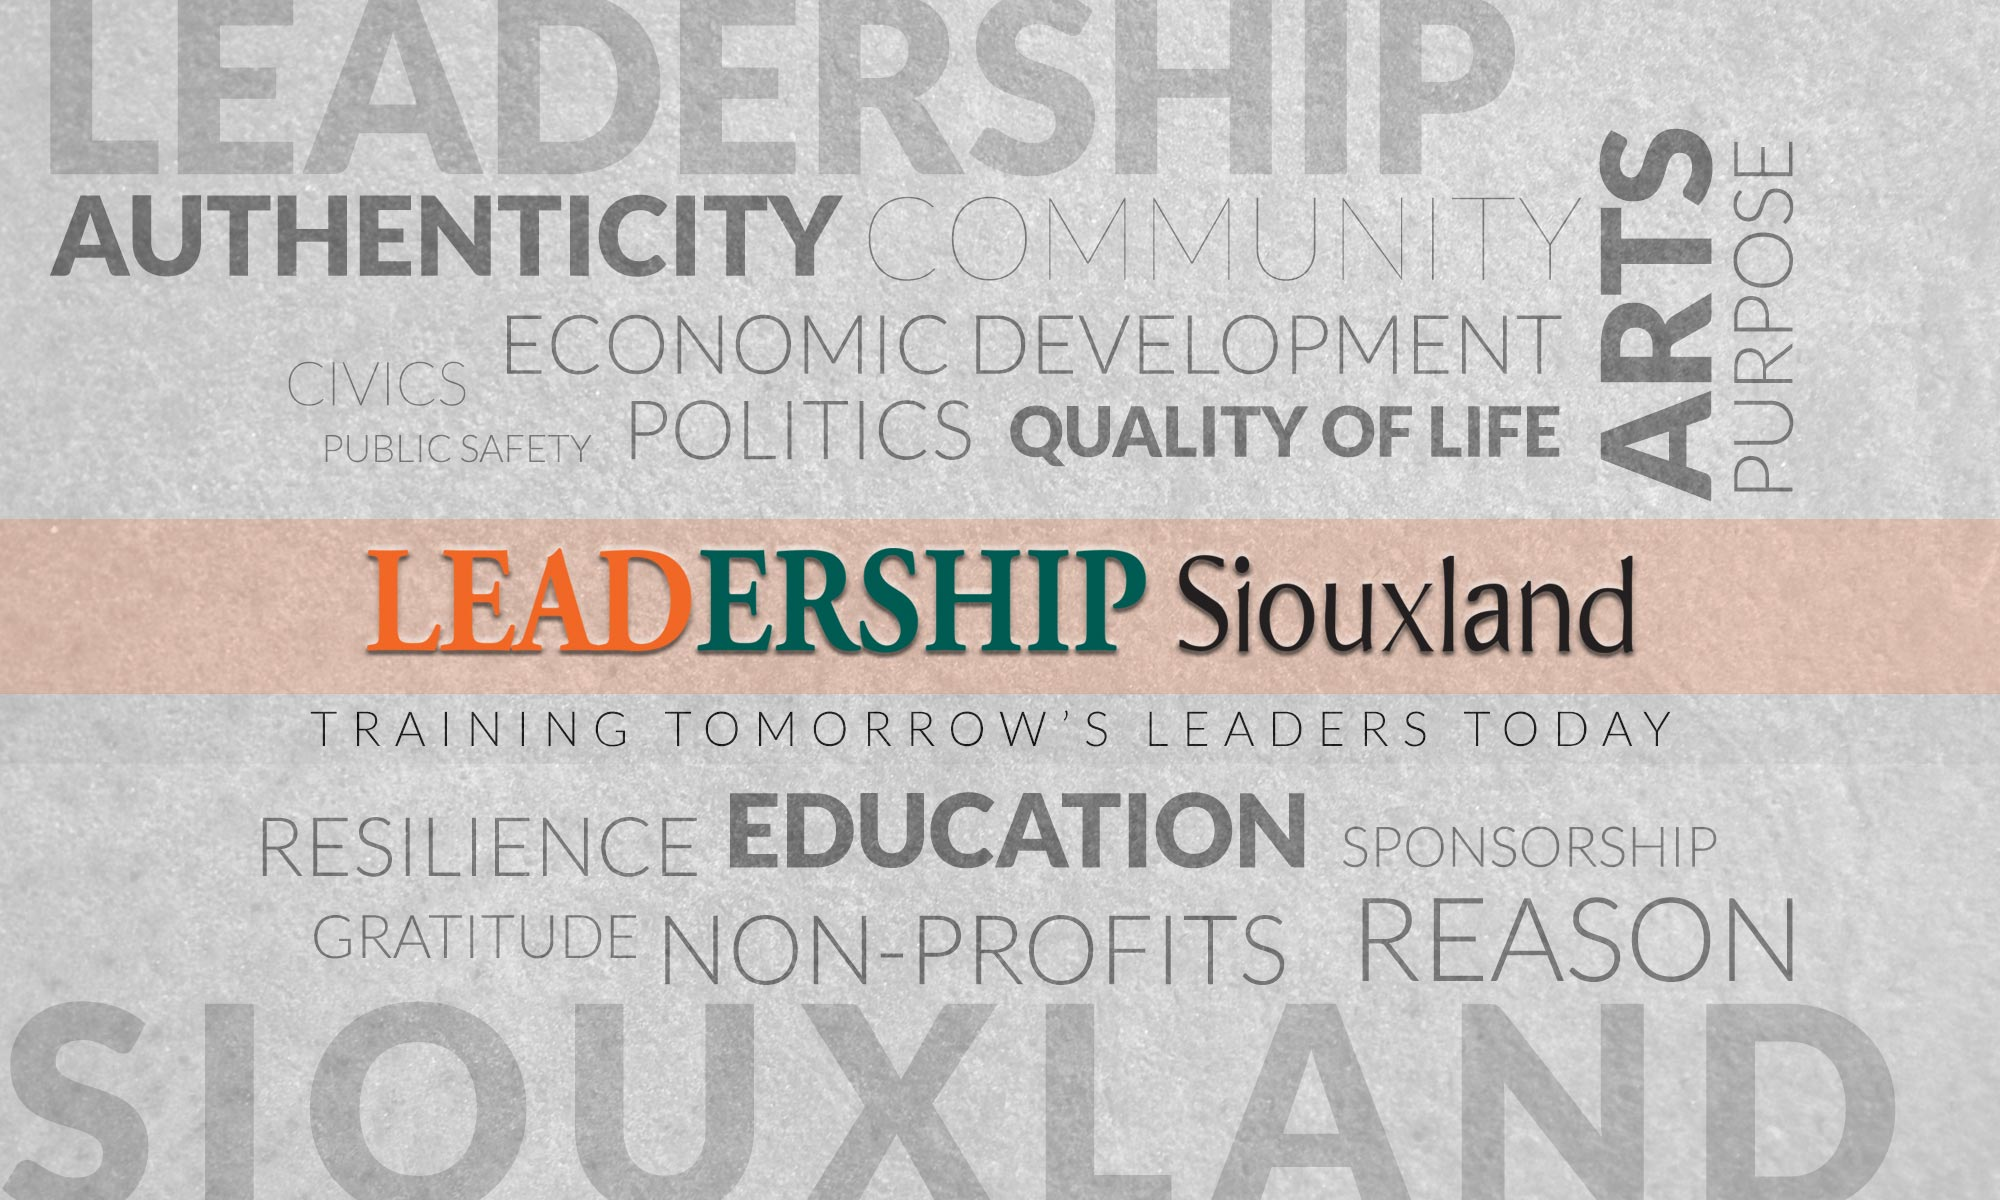 Leadership Siouxland